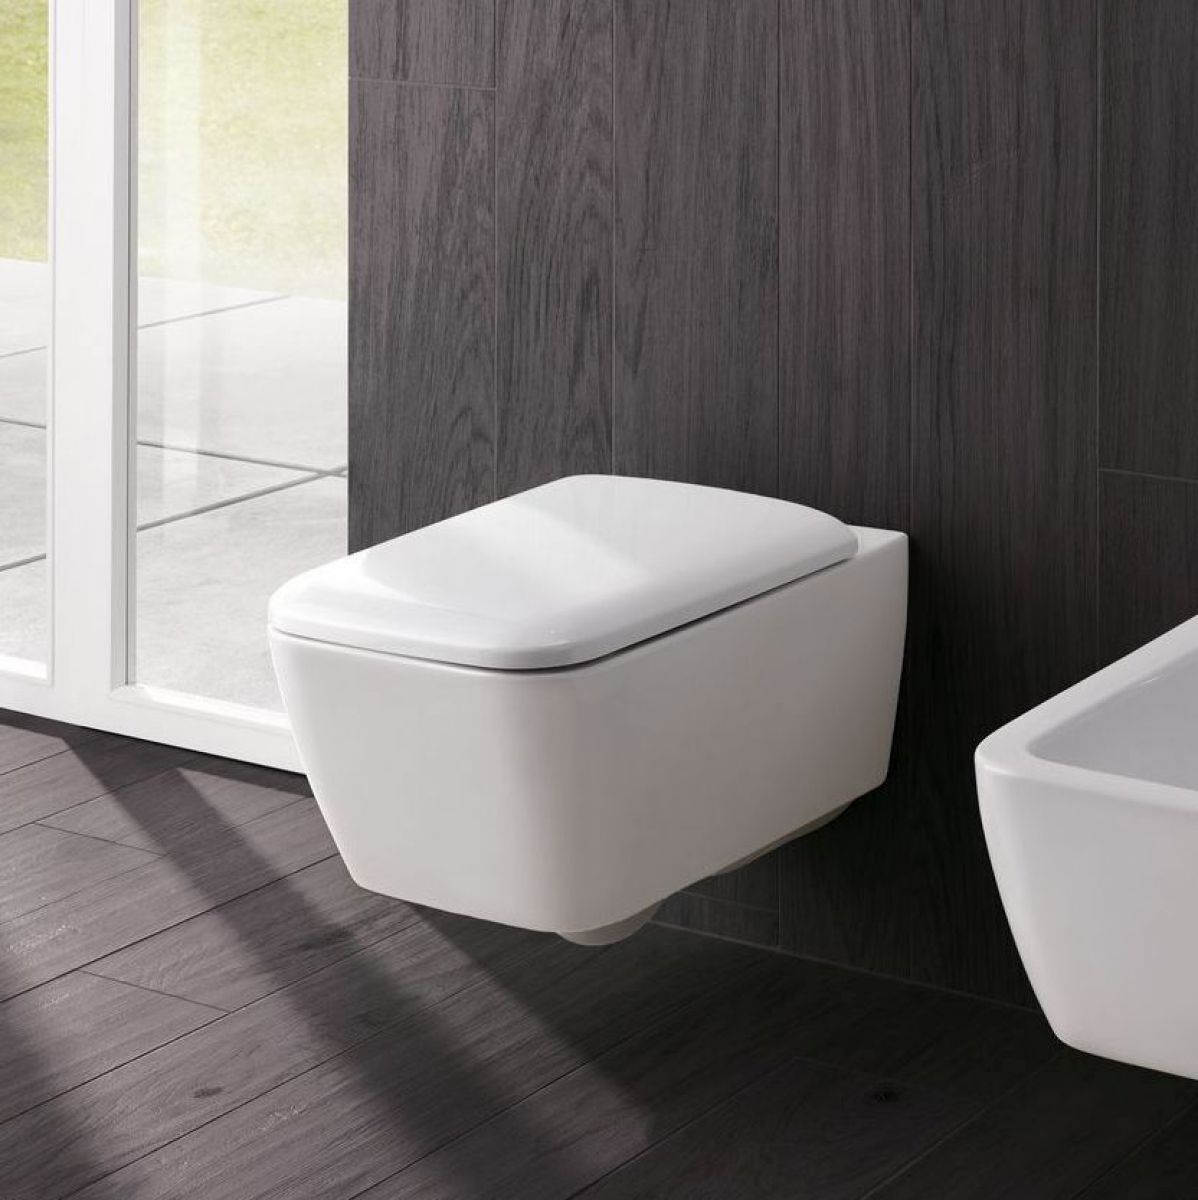 Geberit Icon Square Rimfree Wall Hung Toilet Wall Hung Toilet